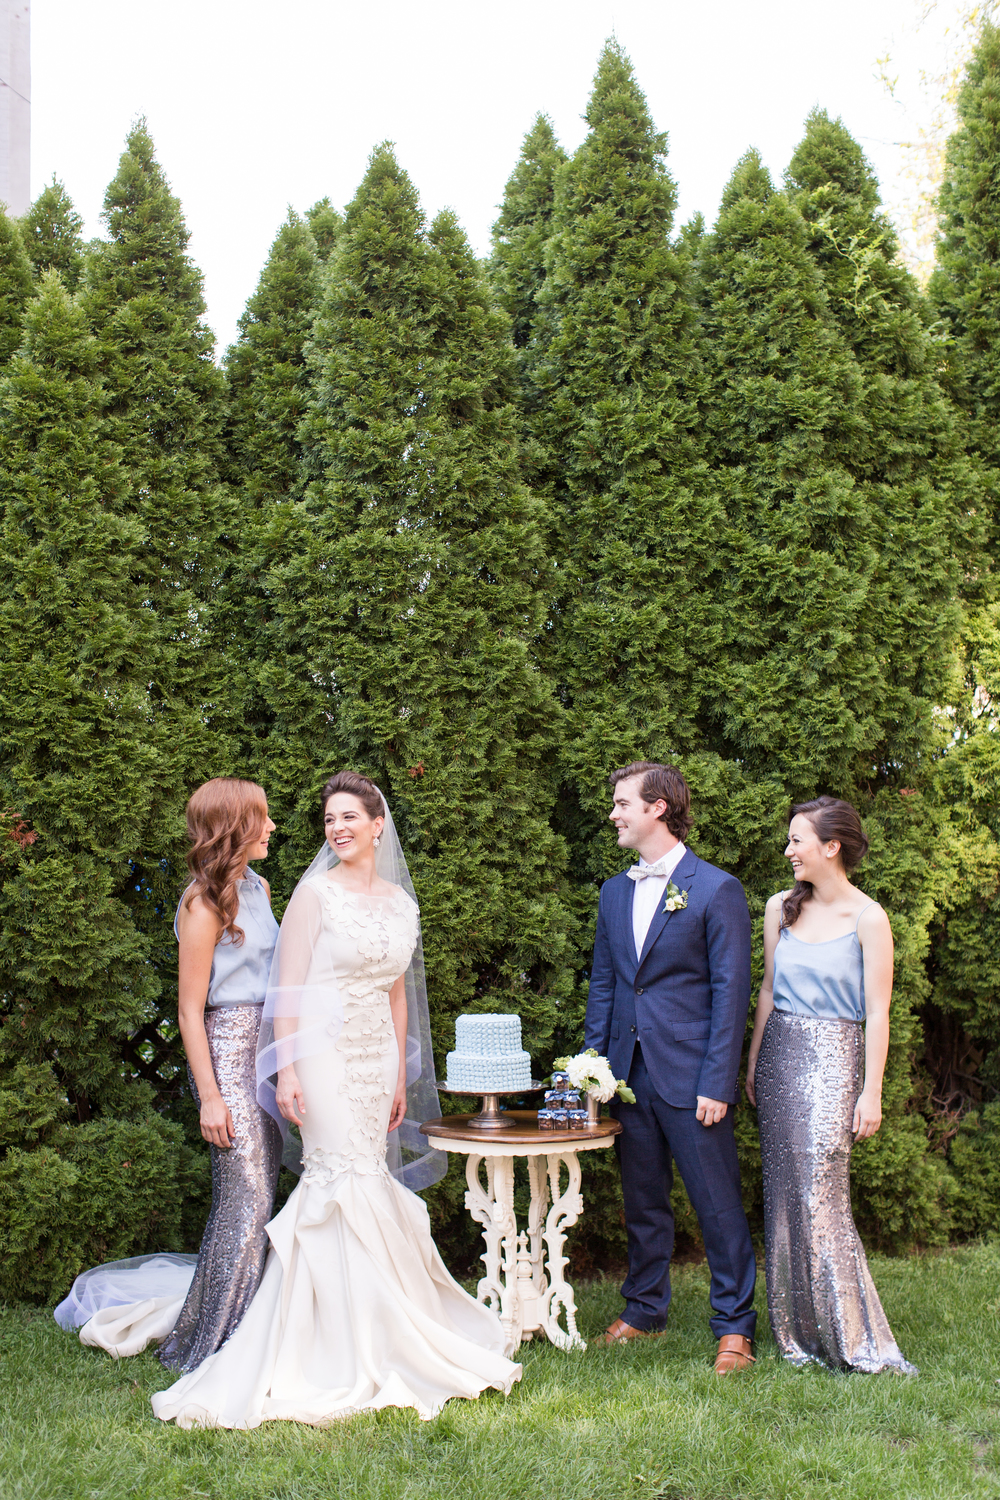 hannah_shih_hanaluluco_cj_isaac_charlie_juliet_ombre_chambray_prospect_park_brooklyn_wedding_26.jpg